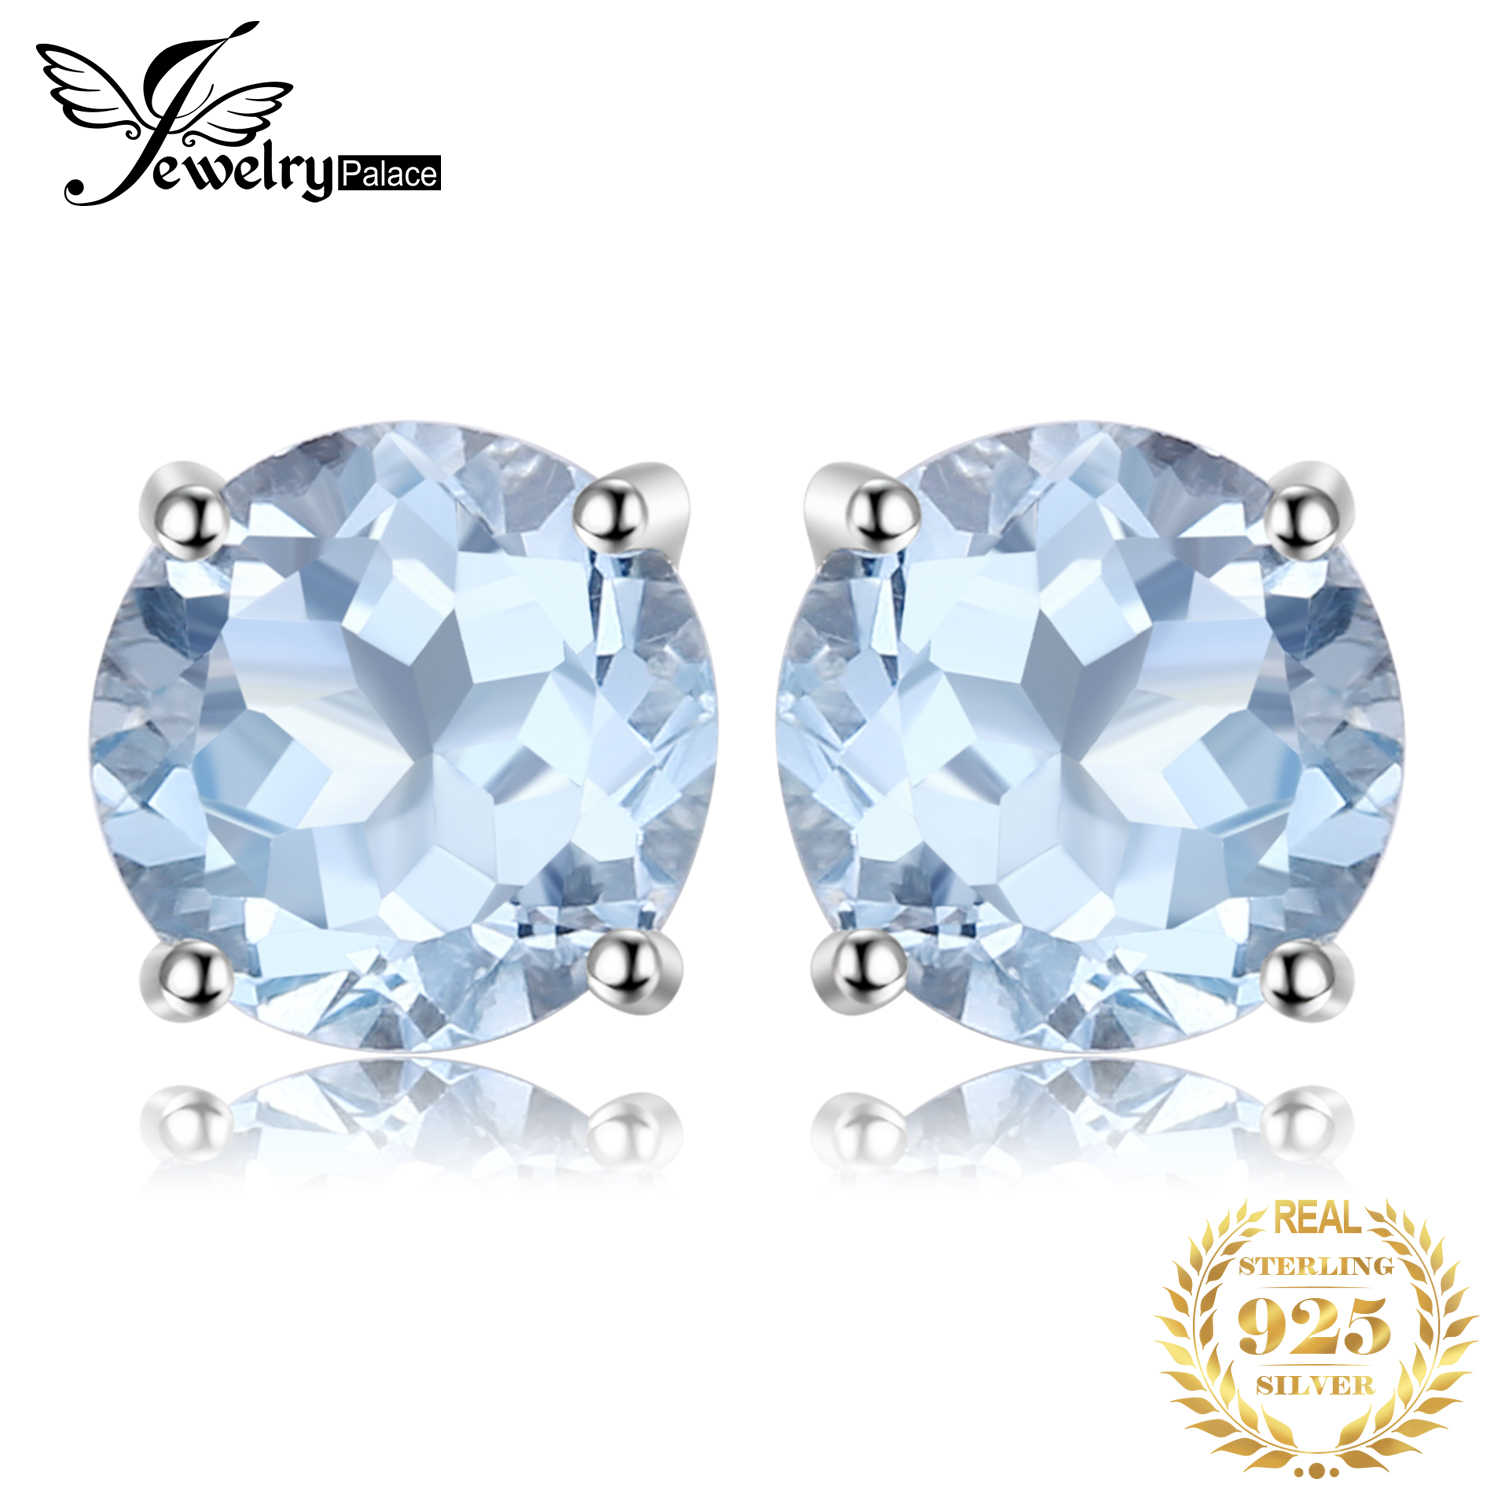 JewelryPalace 2ct Genuine Blue Topaz Stud Earrings 925 Sterling Silver Earrings For Women Korean Earings Fashion Jewelry 2019